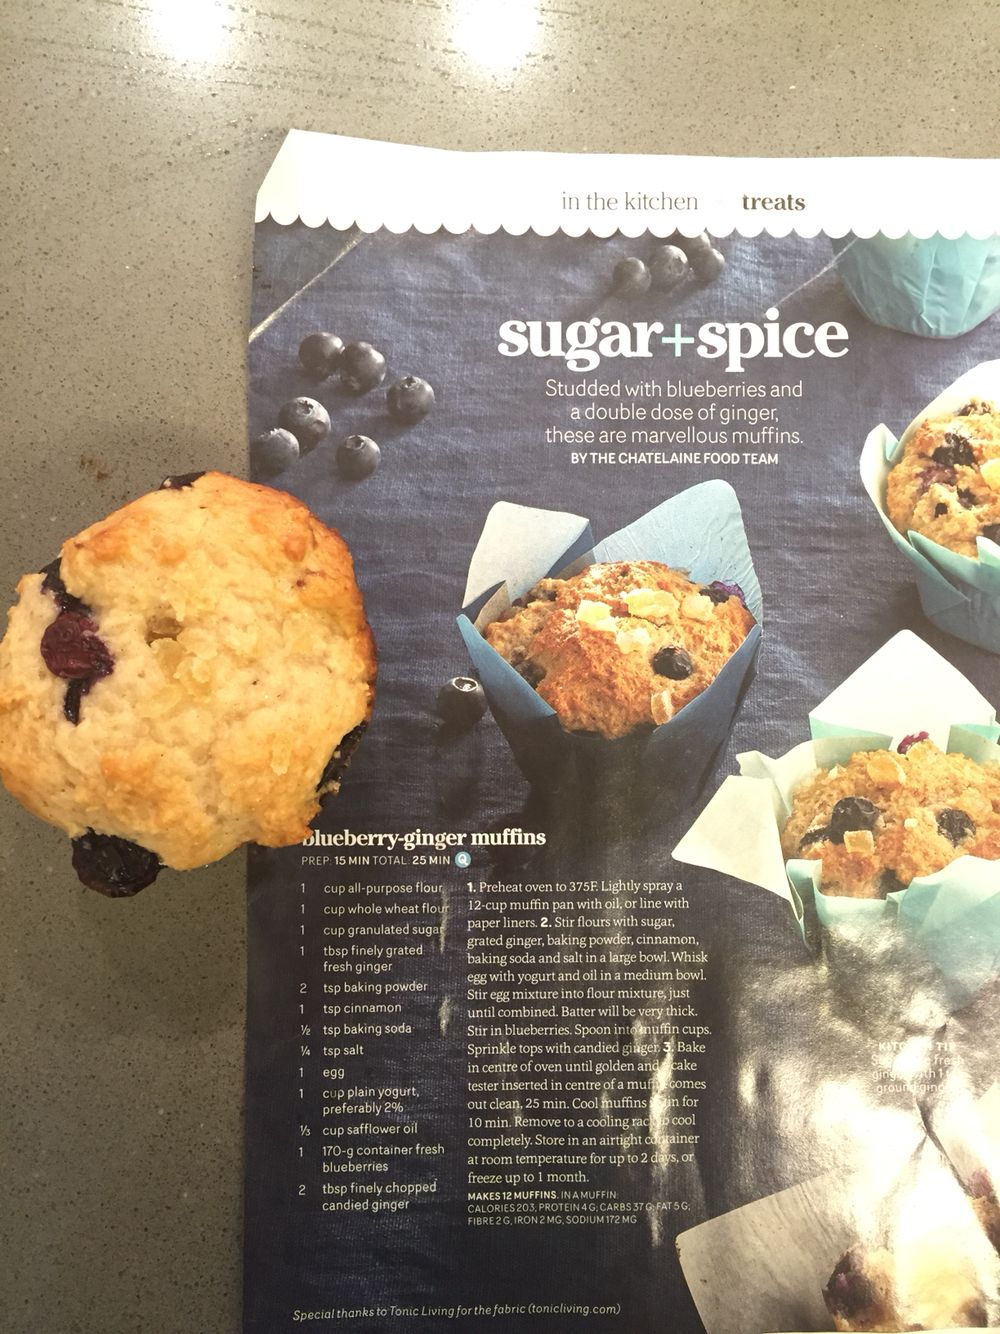 Without a doubt best muffins I have ever made.  I substituted butter for oil and would recommend a bit less sugar.